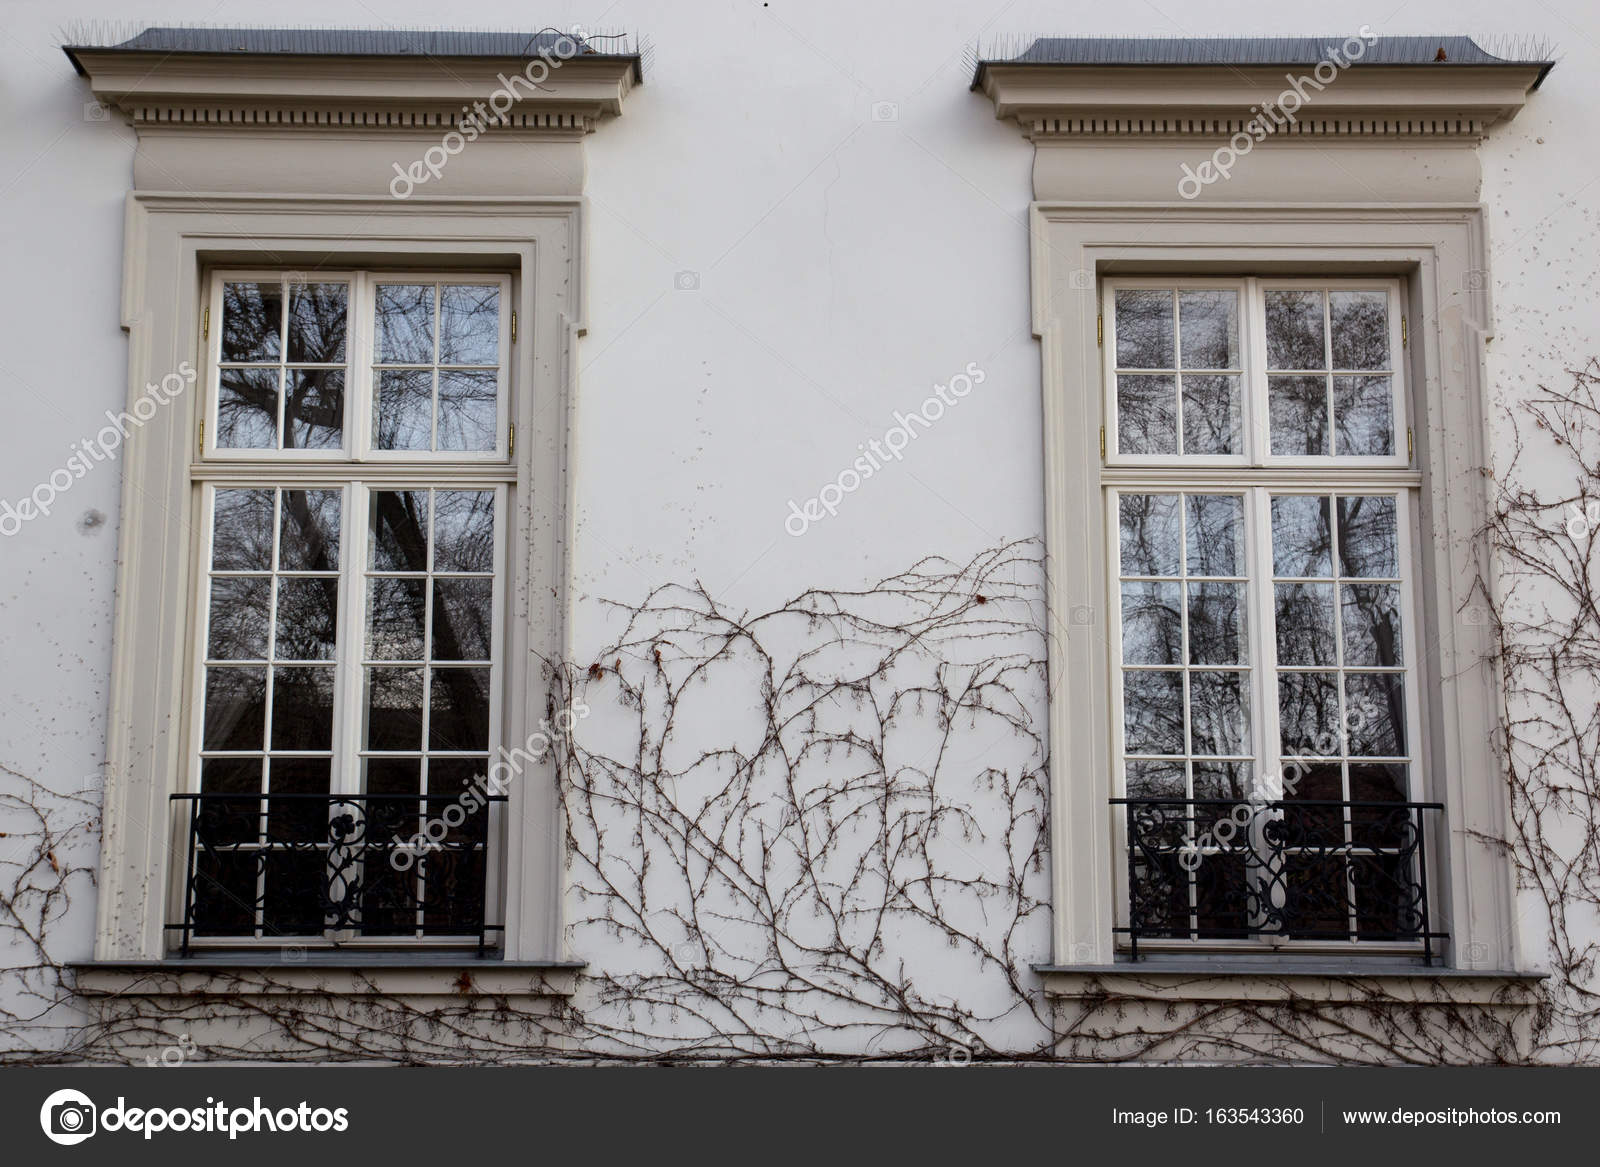 Two vintage design windows on the facade of the old house